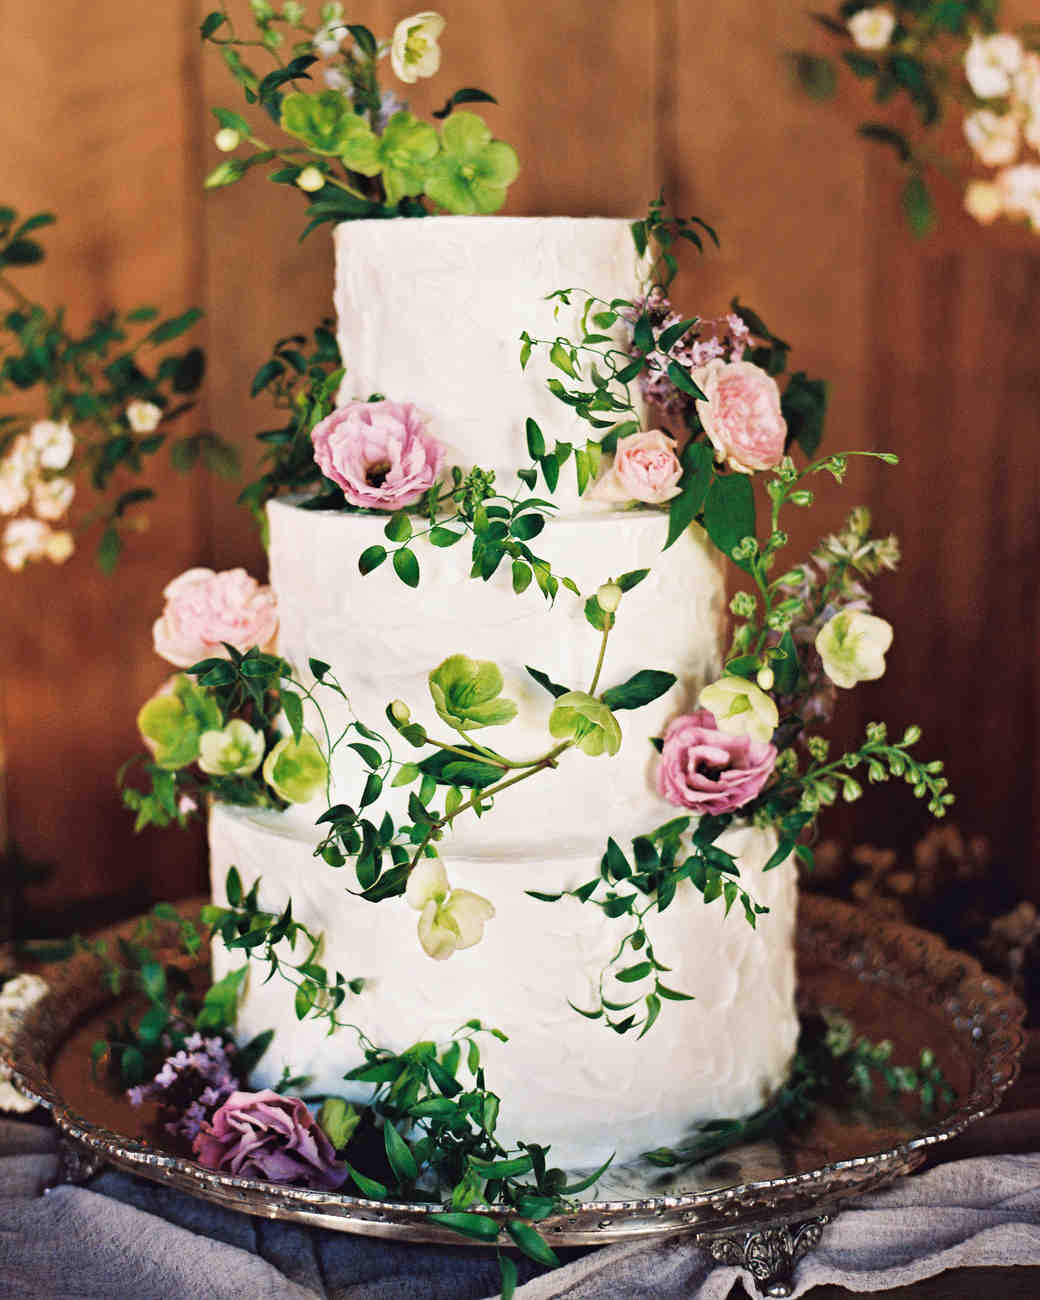 wedding cake flowers decorations 44 wedding cakes with fresh flowers martha stewart weddings 22671